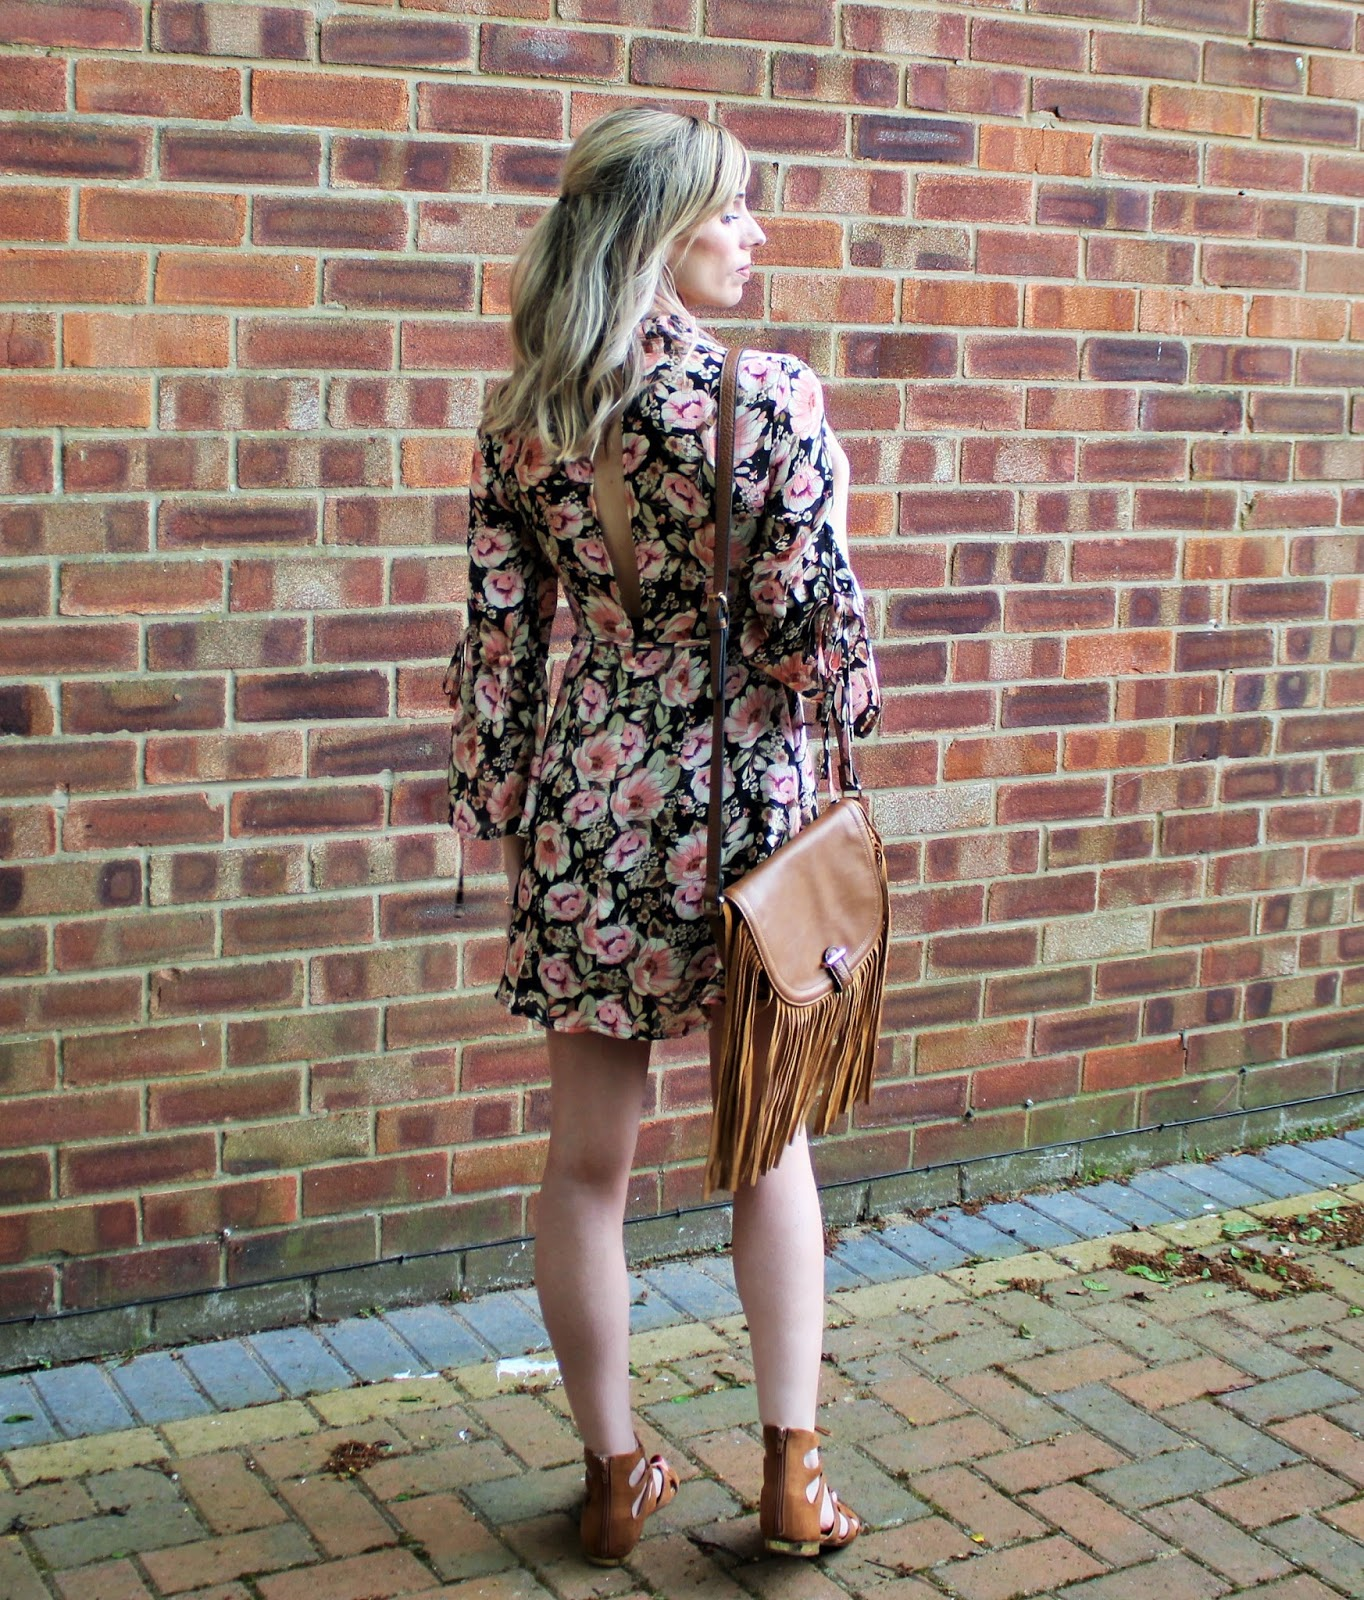 OOTD featuring a floral dress from Topshop and beaded bracelet from Lola Rose - 3